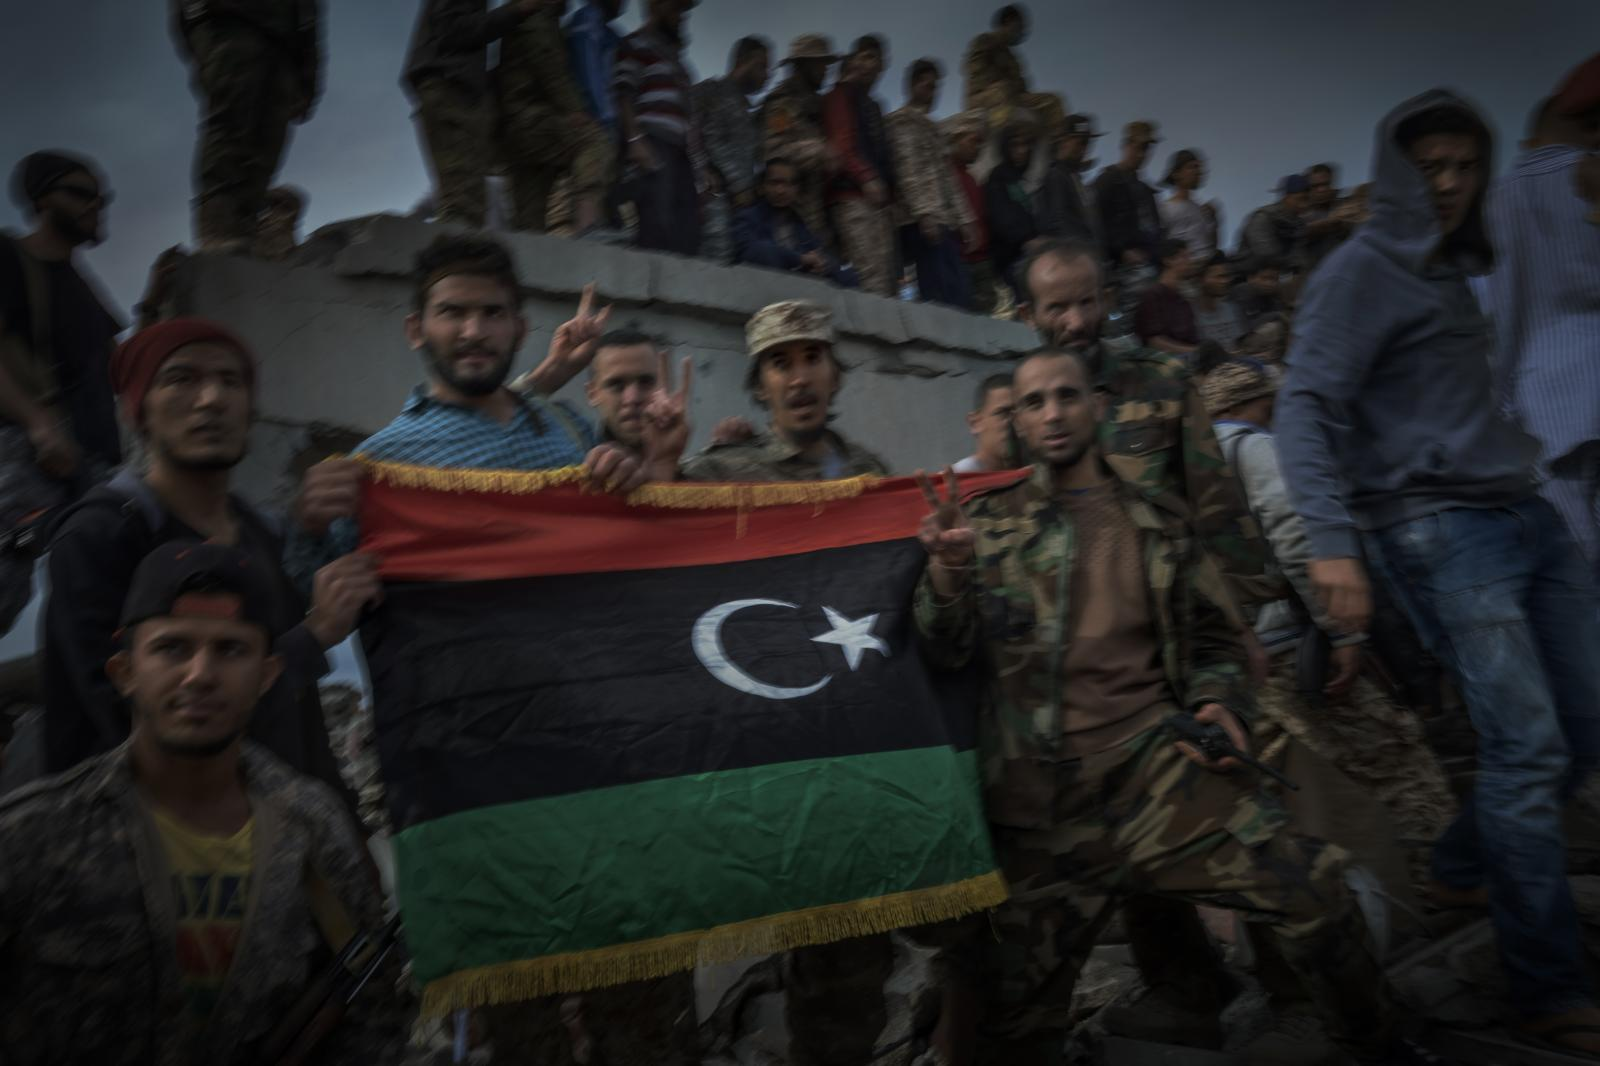 Celebrating the liberation of Sirte from ISIS's clutches. A last group of jihadists buried under the rubble threatened, that day, to blow themselves up. The soldiers had no choice but to douse the entire area in gasoline (2016).